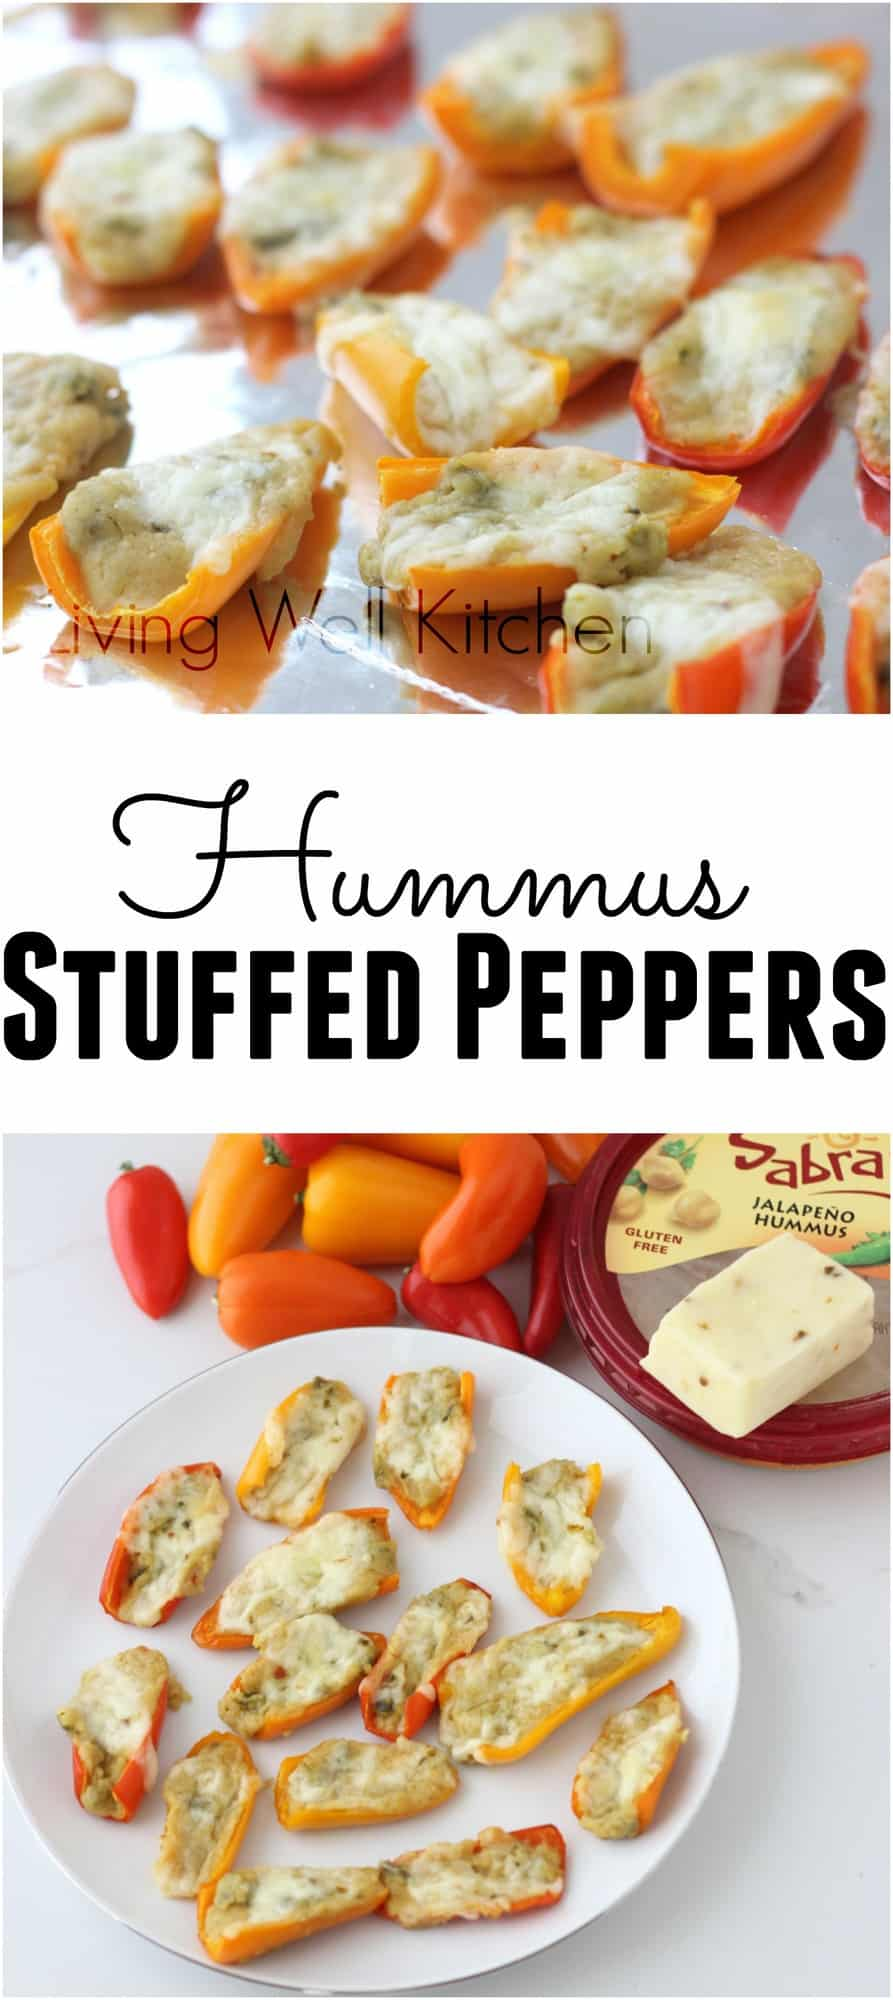 Hummus stuffed peppers are a great three ingredient appetizer that are creamy, spicy, and delicious! from Living Well Kitchen @memeinge